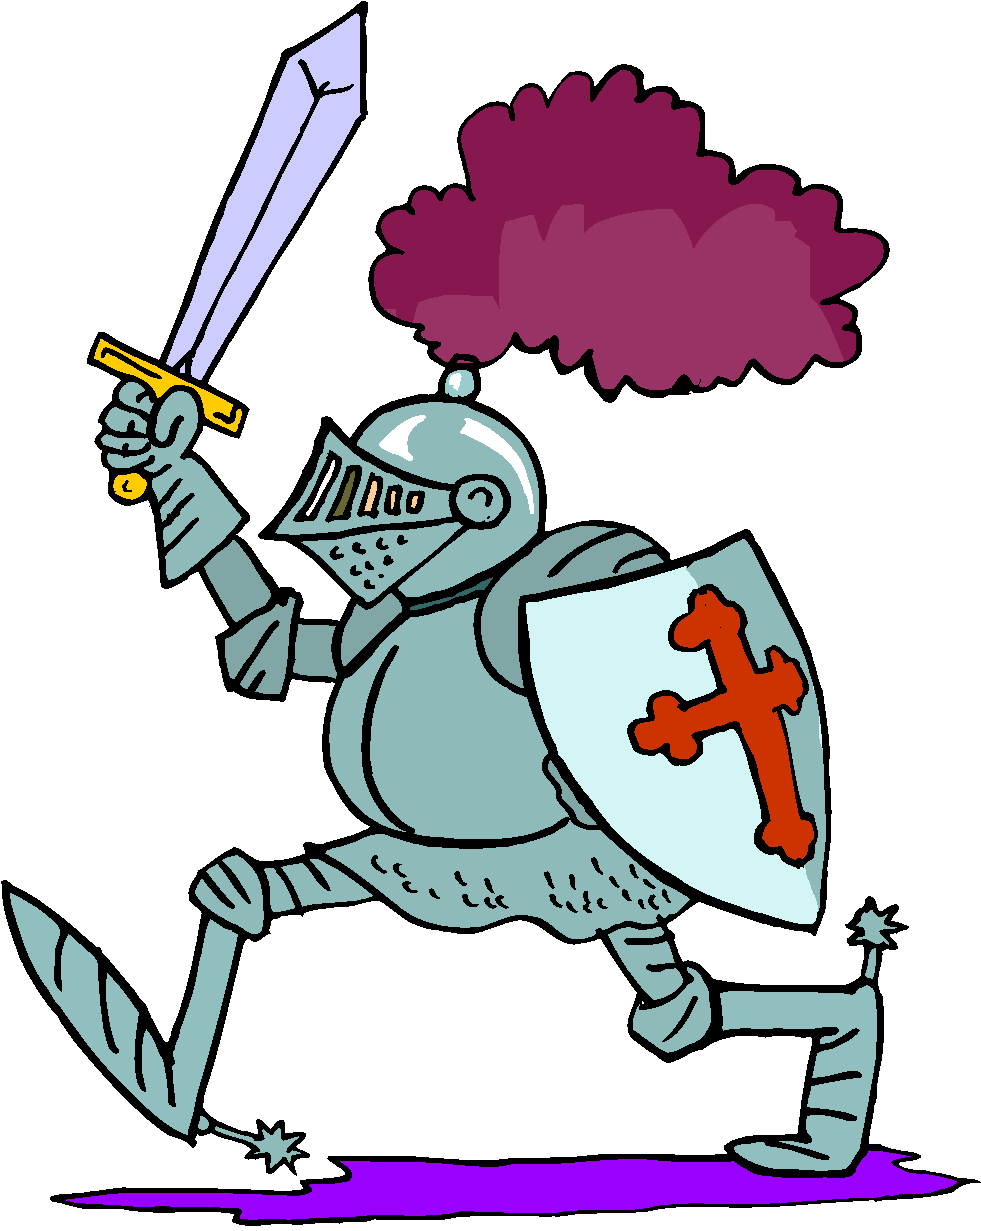 Black And White Knight Clip Art Armor Free Clipartpng free image.